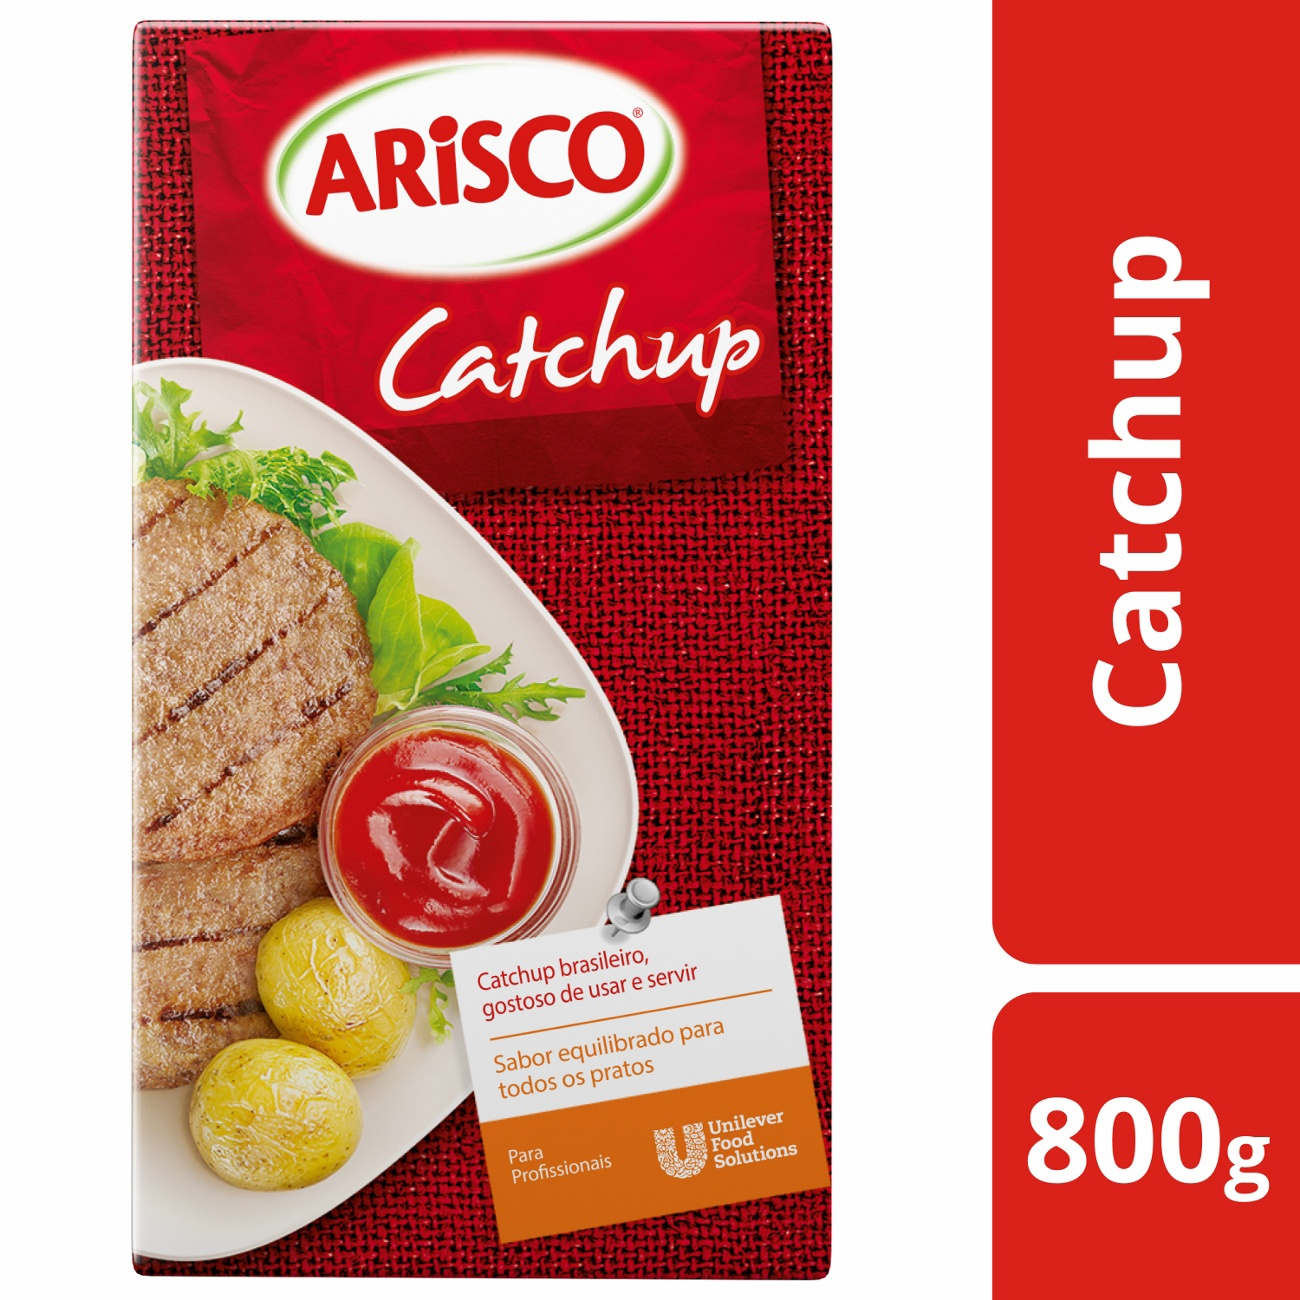 Catchup Arisco Tetra Pack 1,16kg